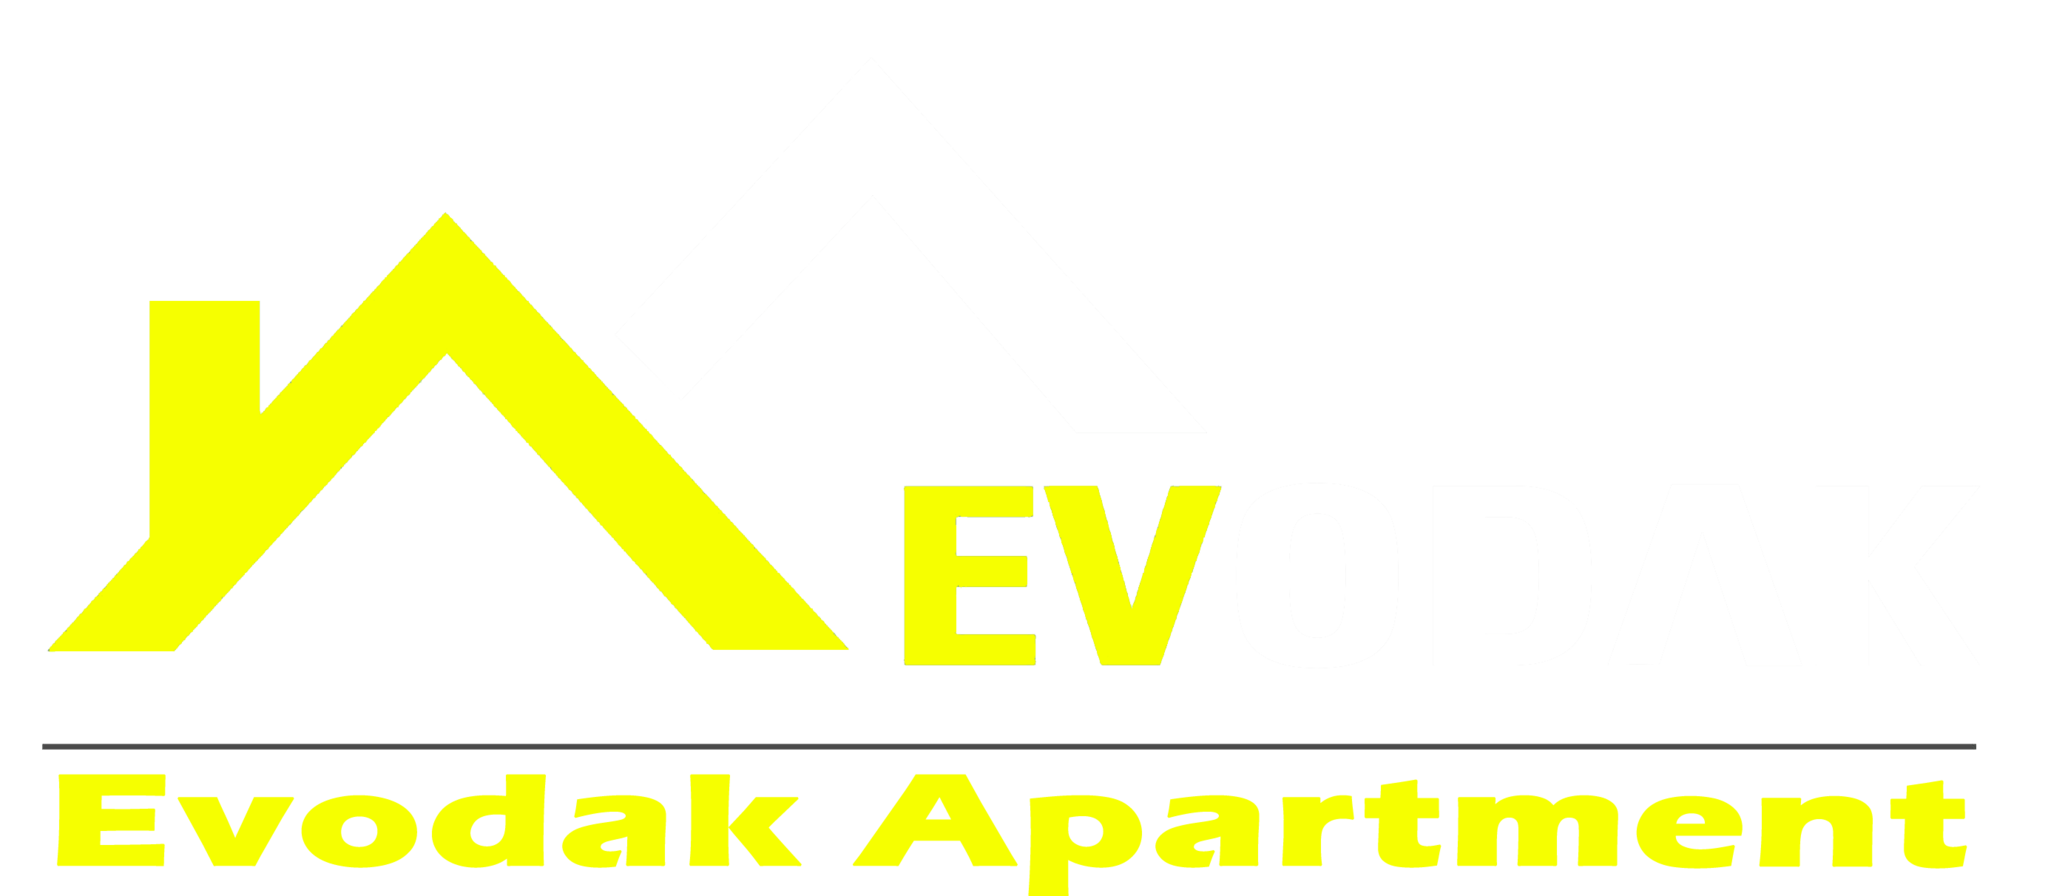 Evodak Apartment